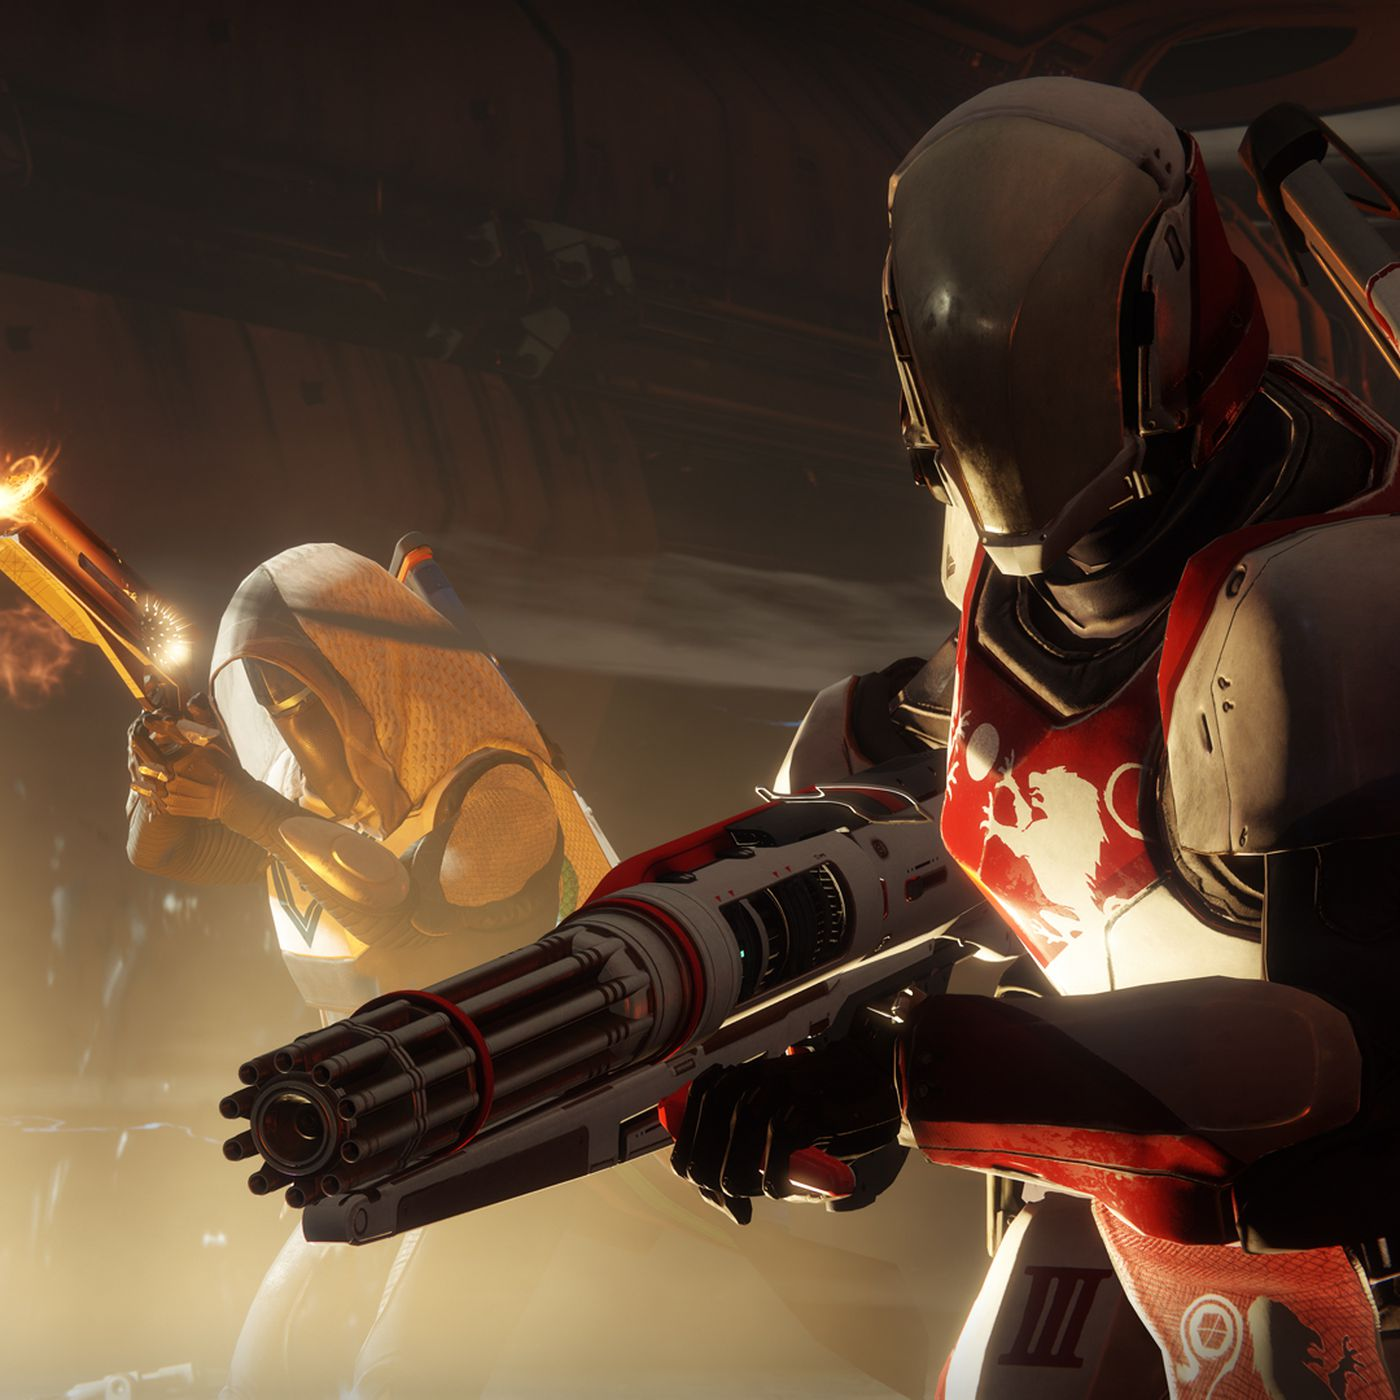 Before the Destiny 2 beta, link your Battle net and Bungie accounts